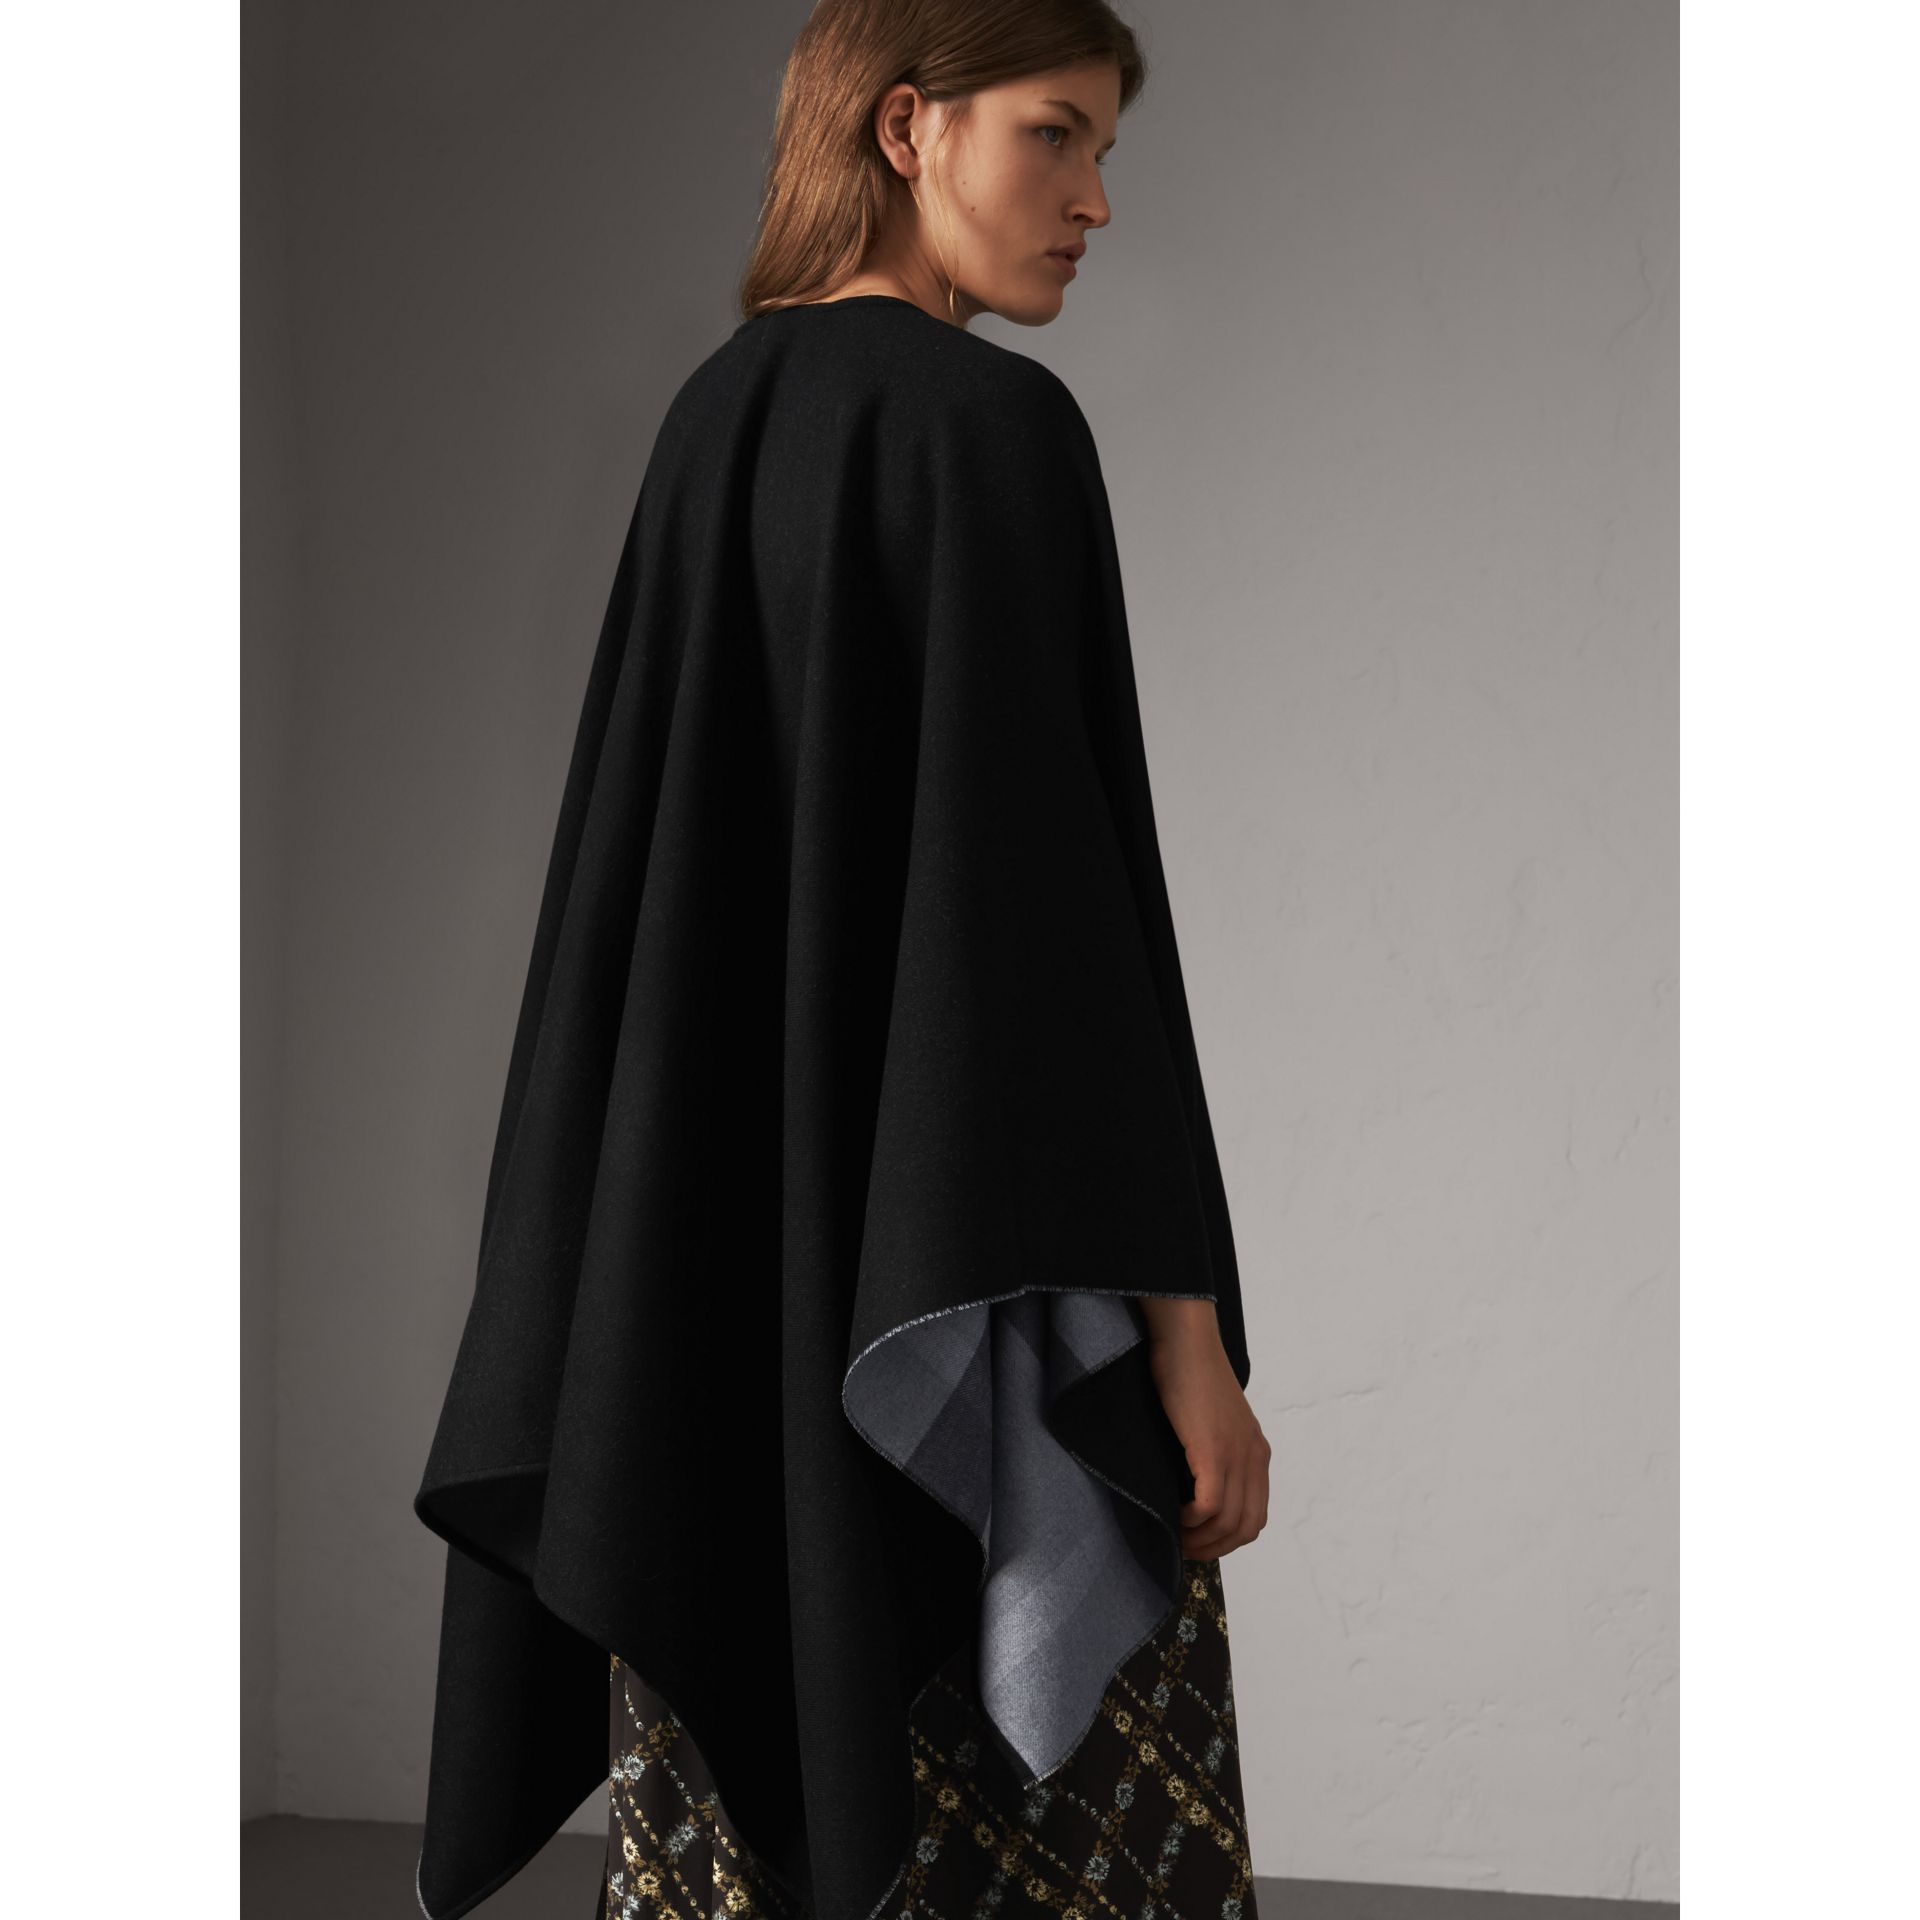 Reversible Check Merino Wool Poncho in Charcoal - Women | Burberry United Kingdom - gallery image 2